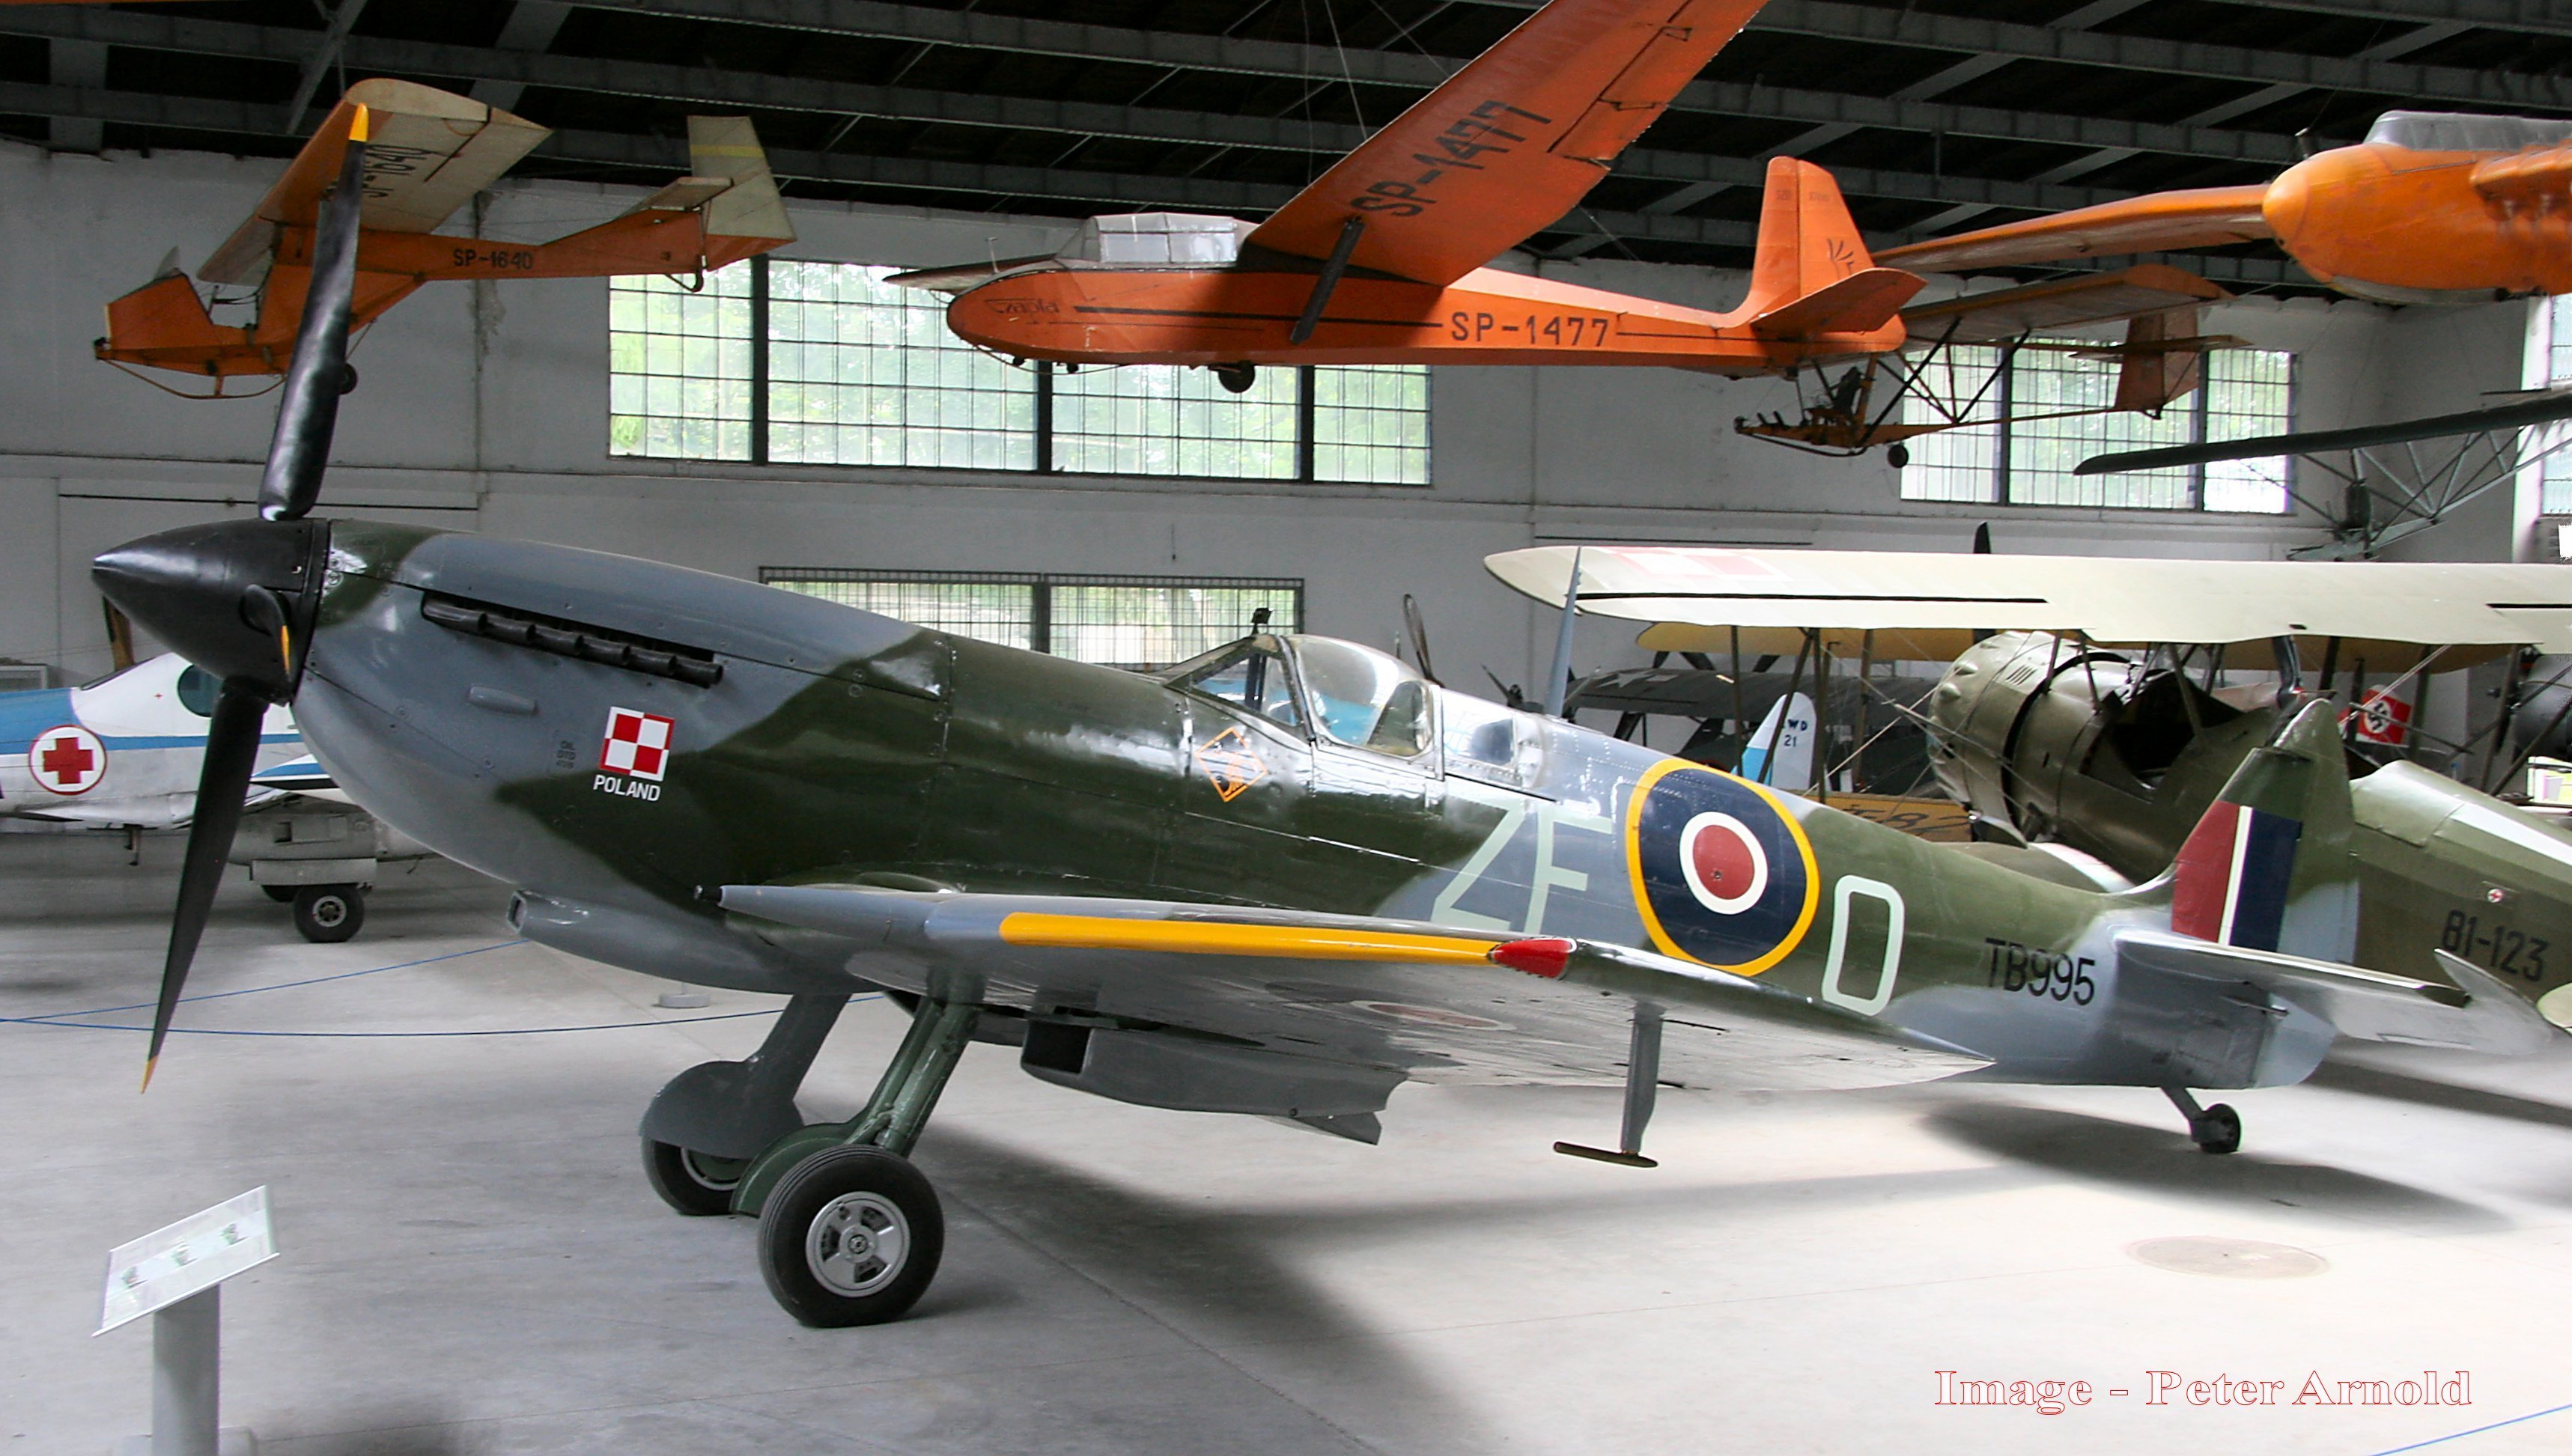 The repainted Spitfire once flown by Mann is shown in the Polish Aviation Museum in Krakow, Poland. (Peter Arnold)